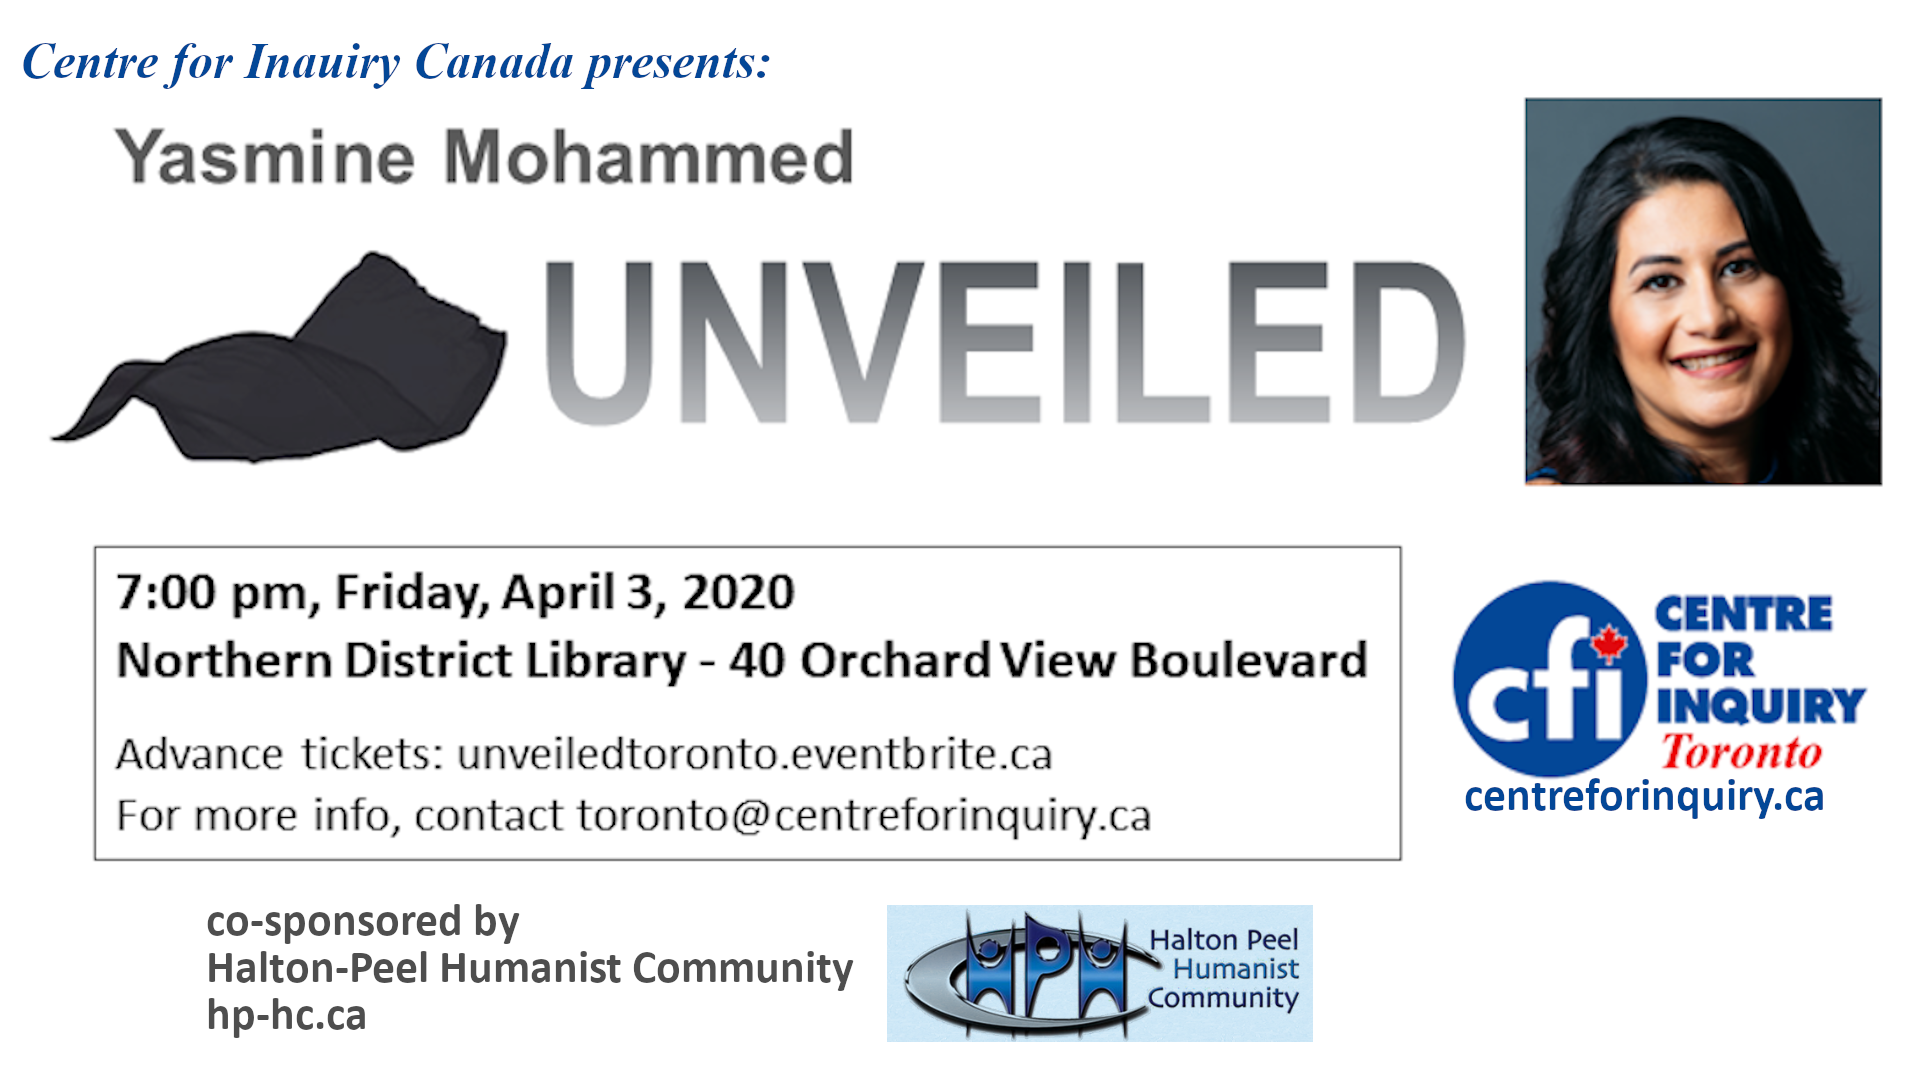 Unveiled with Yasmine Mohammed (Toronto)